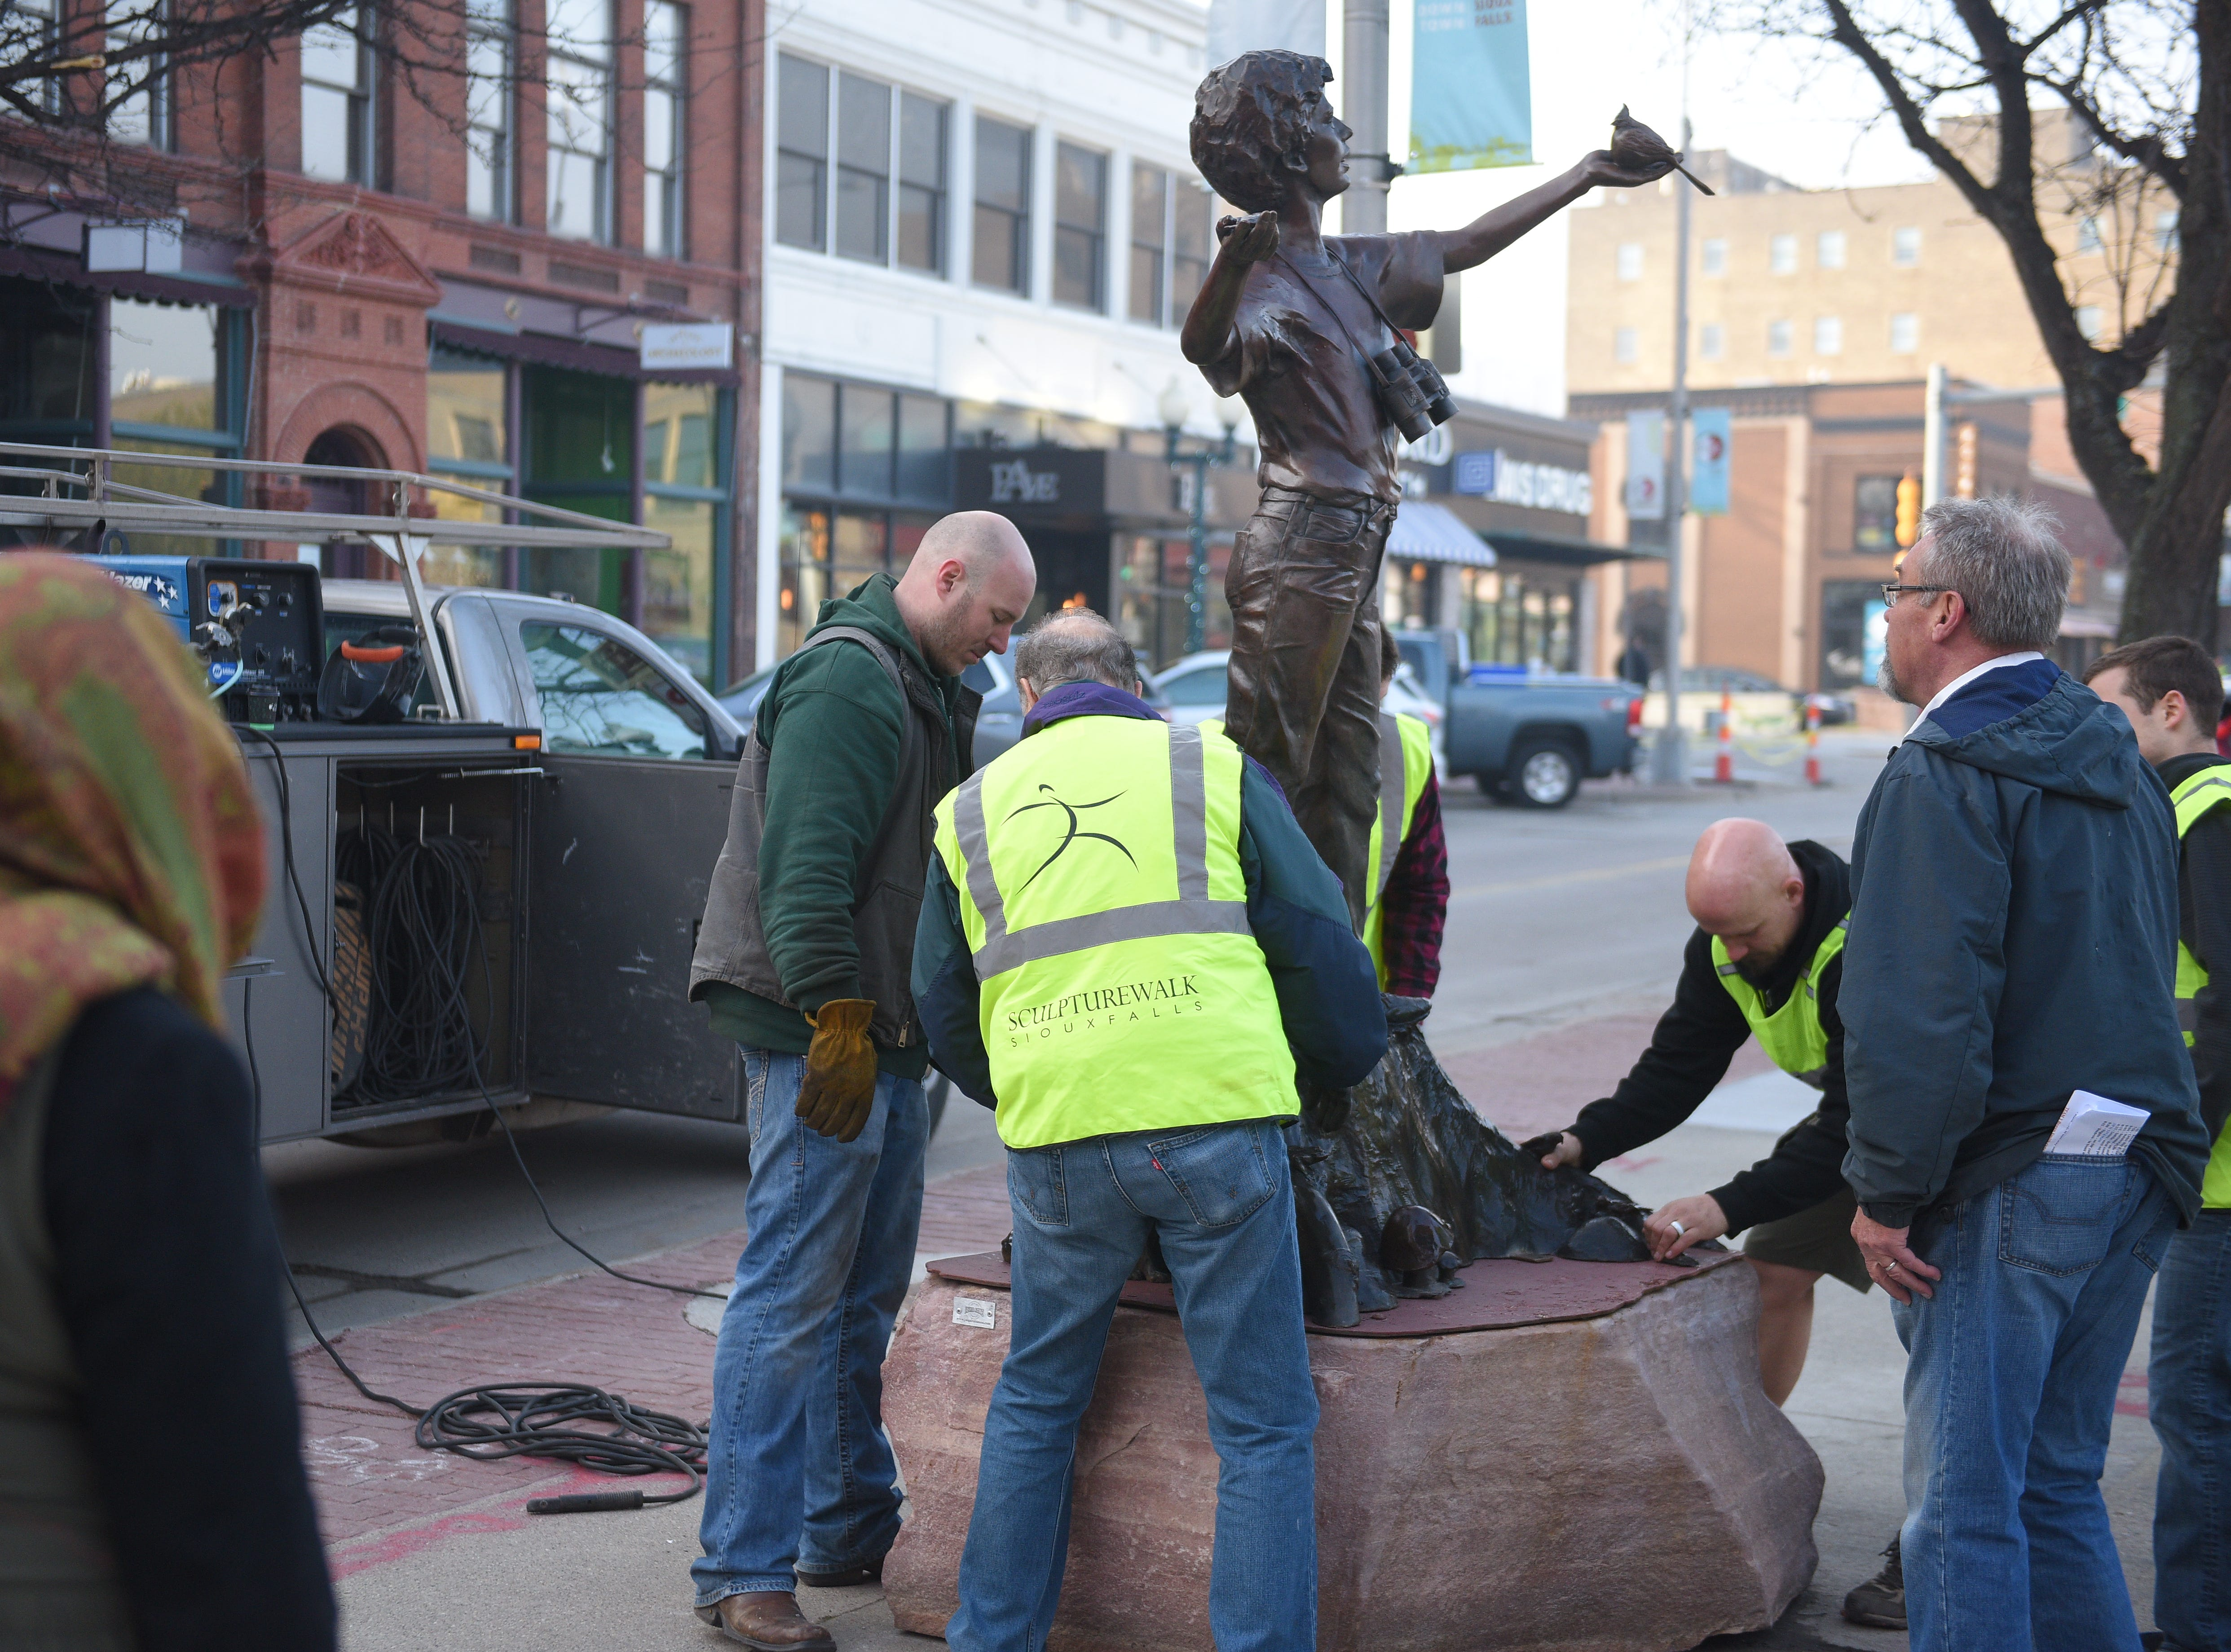 Bobbie Carlyle watches as SculptureWalk Sioux Falls crews install her sculpture on Phillips Avenue the morning of Saturday, May 4, 2019, as part of the 16th Annual SculptureWalk Sioux Falls.